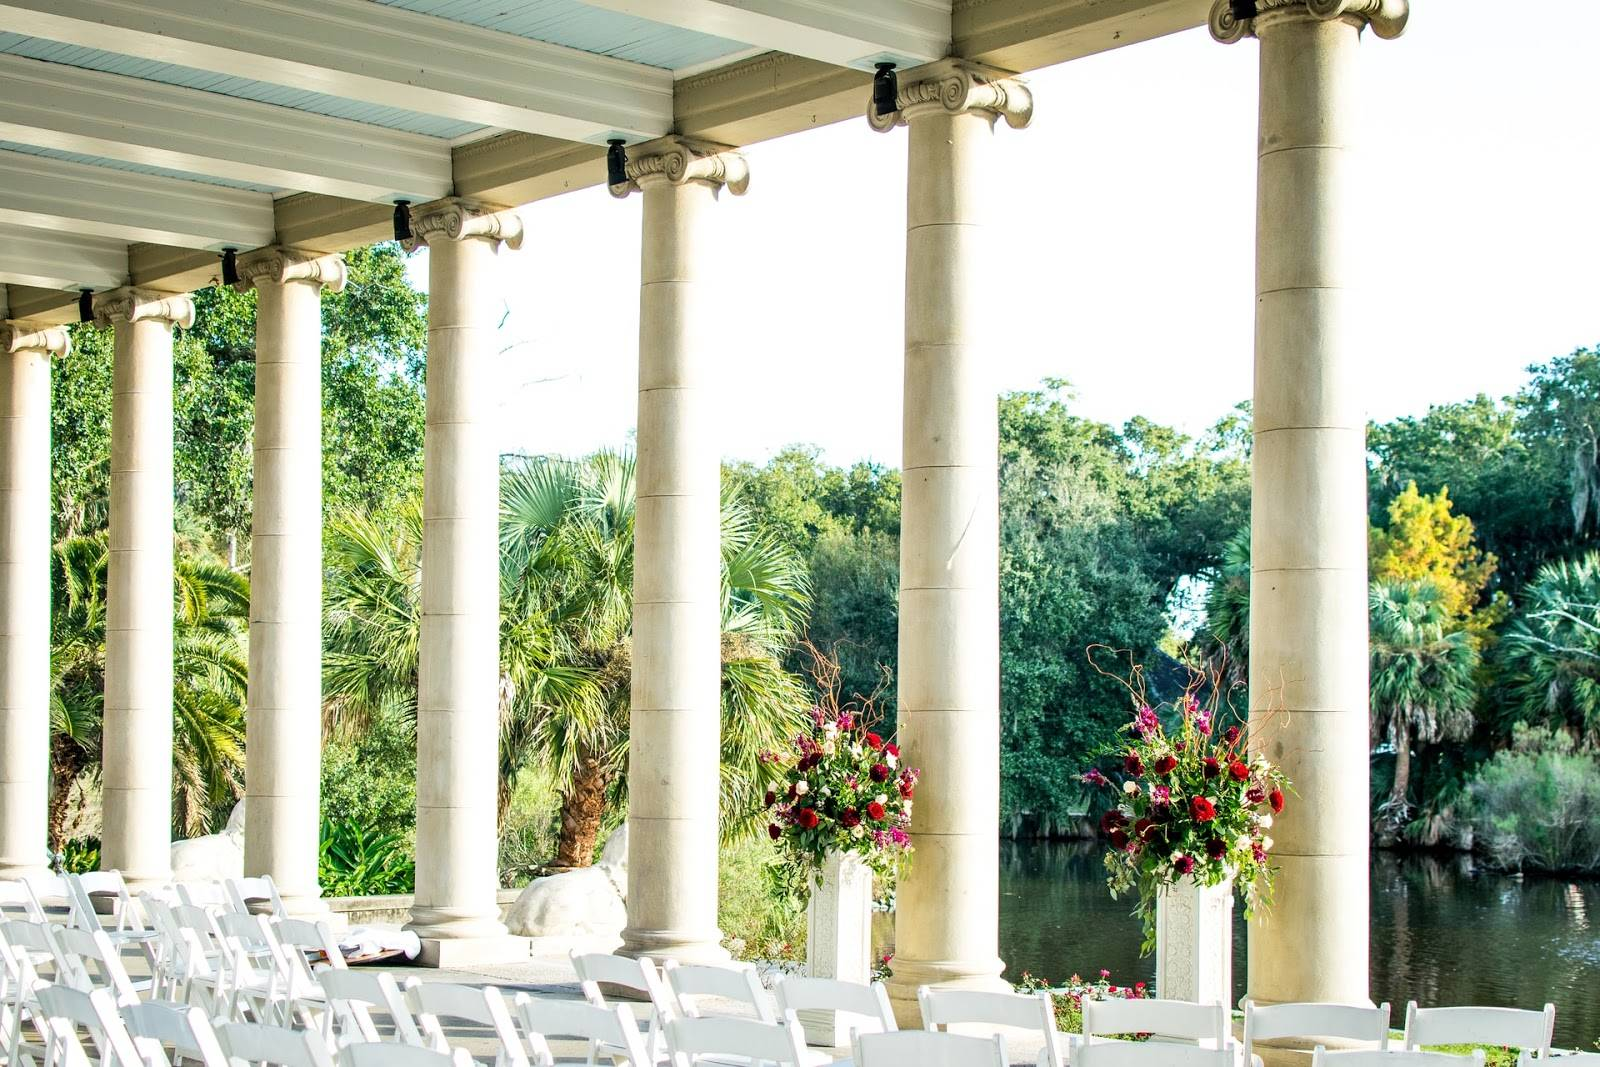 Stunning Outdoor Wedding Ideas for a COVID-friendly Celebration